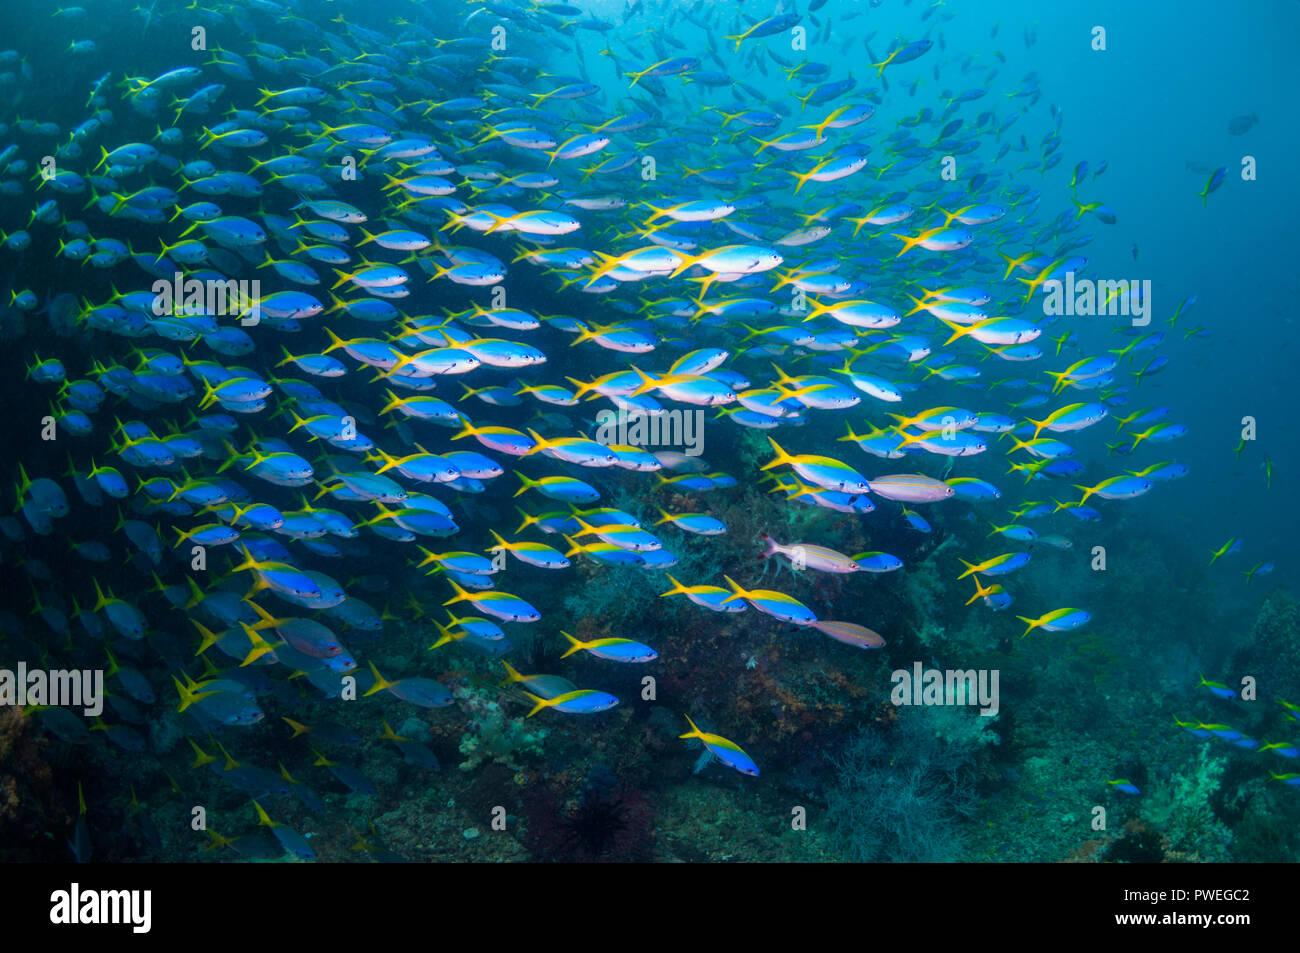 School of Yellowback fusiliers [Ceasio teres].  West Papua, Indonesia. Stock Photo